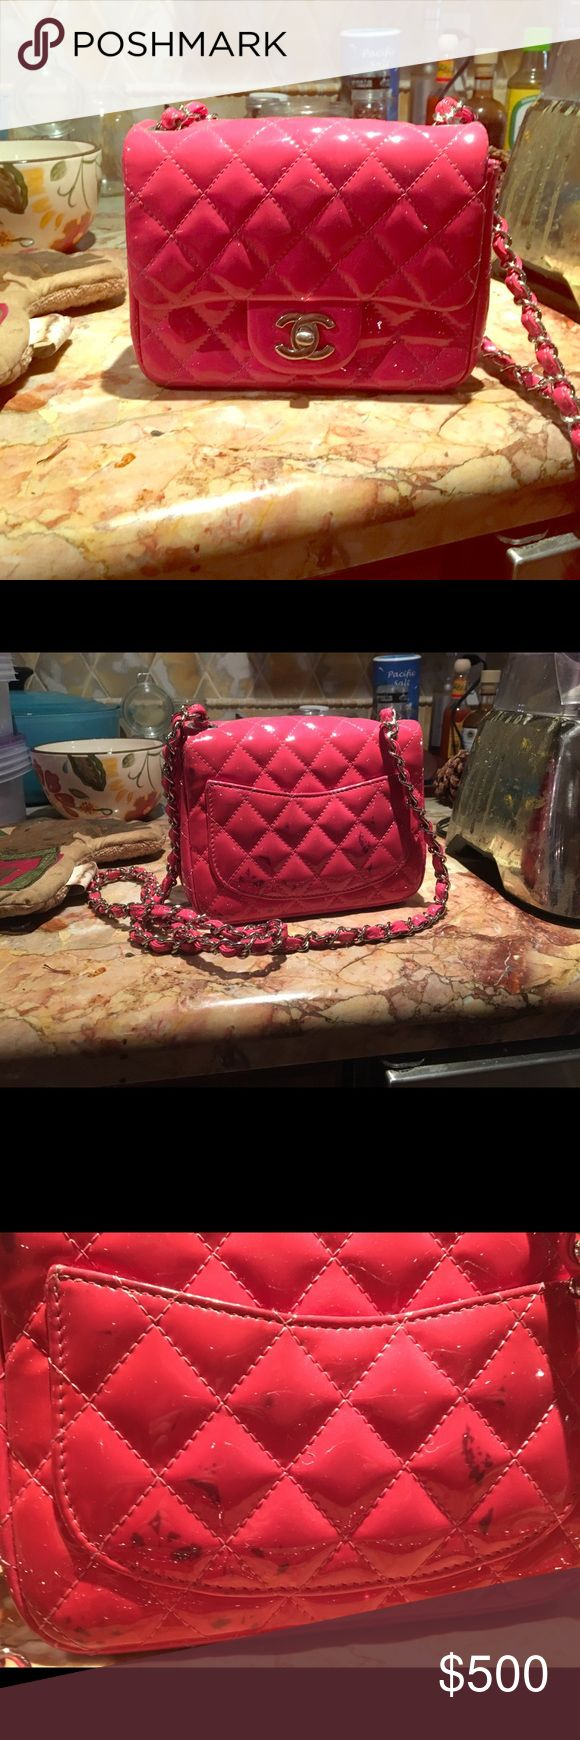 CHANEL Patent Quilted Extra Mini Flap Pink ULTRA RARE AND ABSOLUTELY STUNNING AUTHENTIC CHANEL PINK QUILTED PATENT LEATHER SQUARE MINI FLAP BAG WITH SPARKLING SILVERTONE HARDWARE! This charming mini flap is crafted of glossy diamond quilted patent leather in pink. The bag features a cross body leather shoulder strap threaded with leather and a silver frontal Chanel CC Mademoiselle turn lock that opens the flap to a matching leather interior Bag is in excellent condition except for some black…